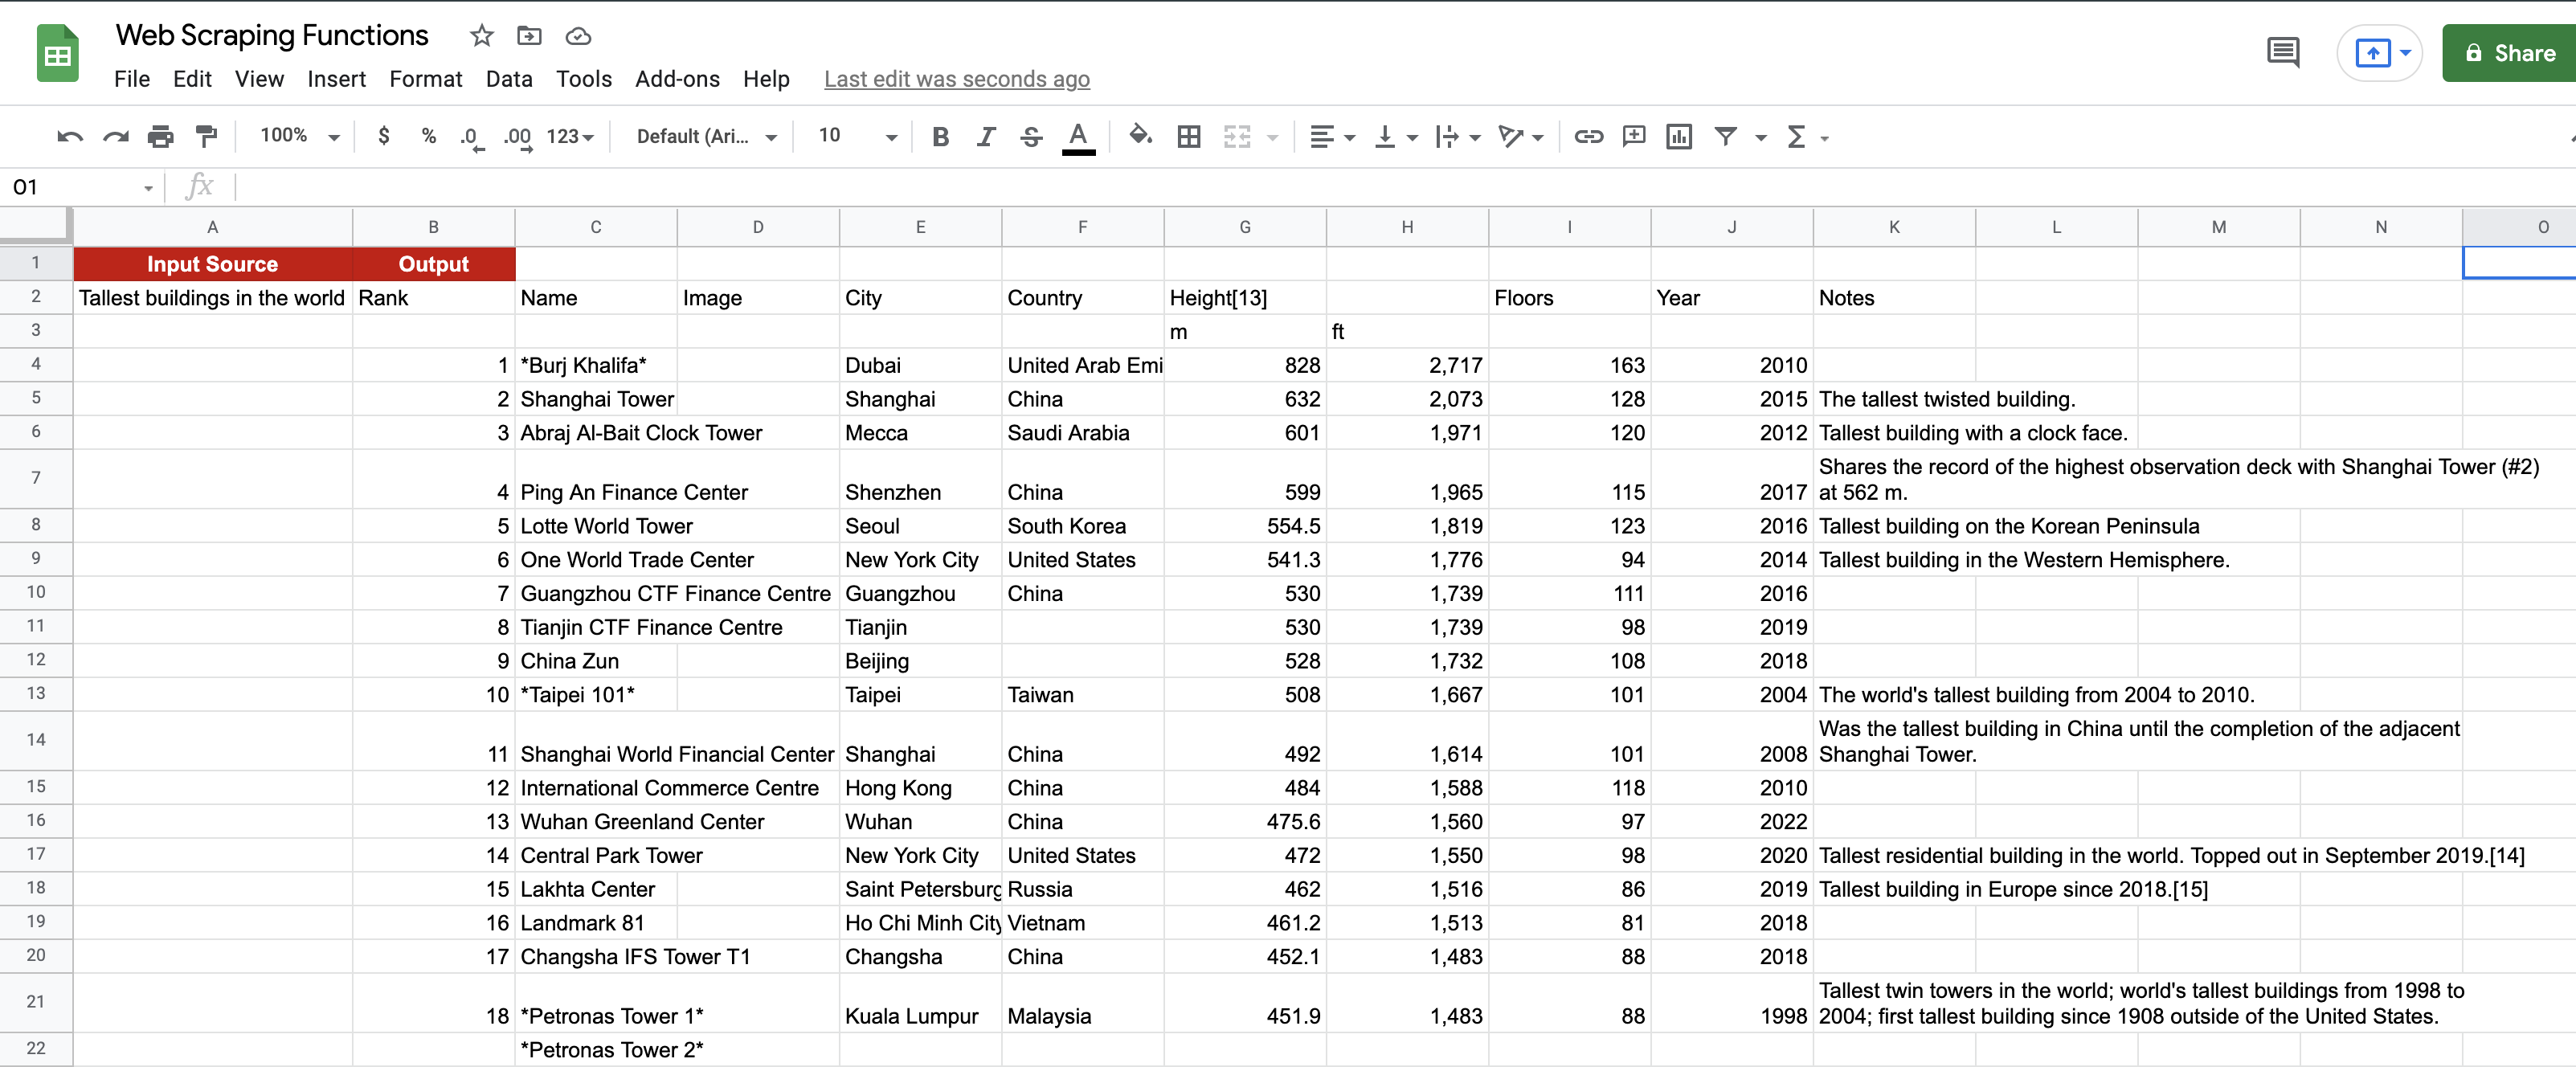 IMPORTHTML function in Google Sheets